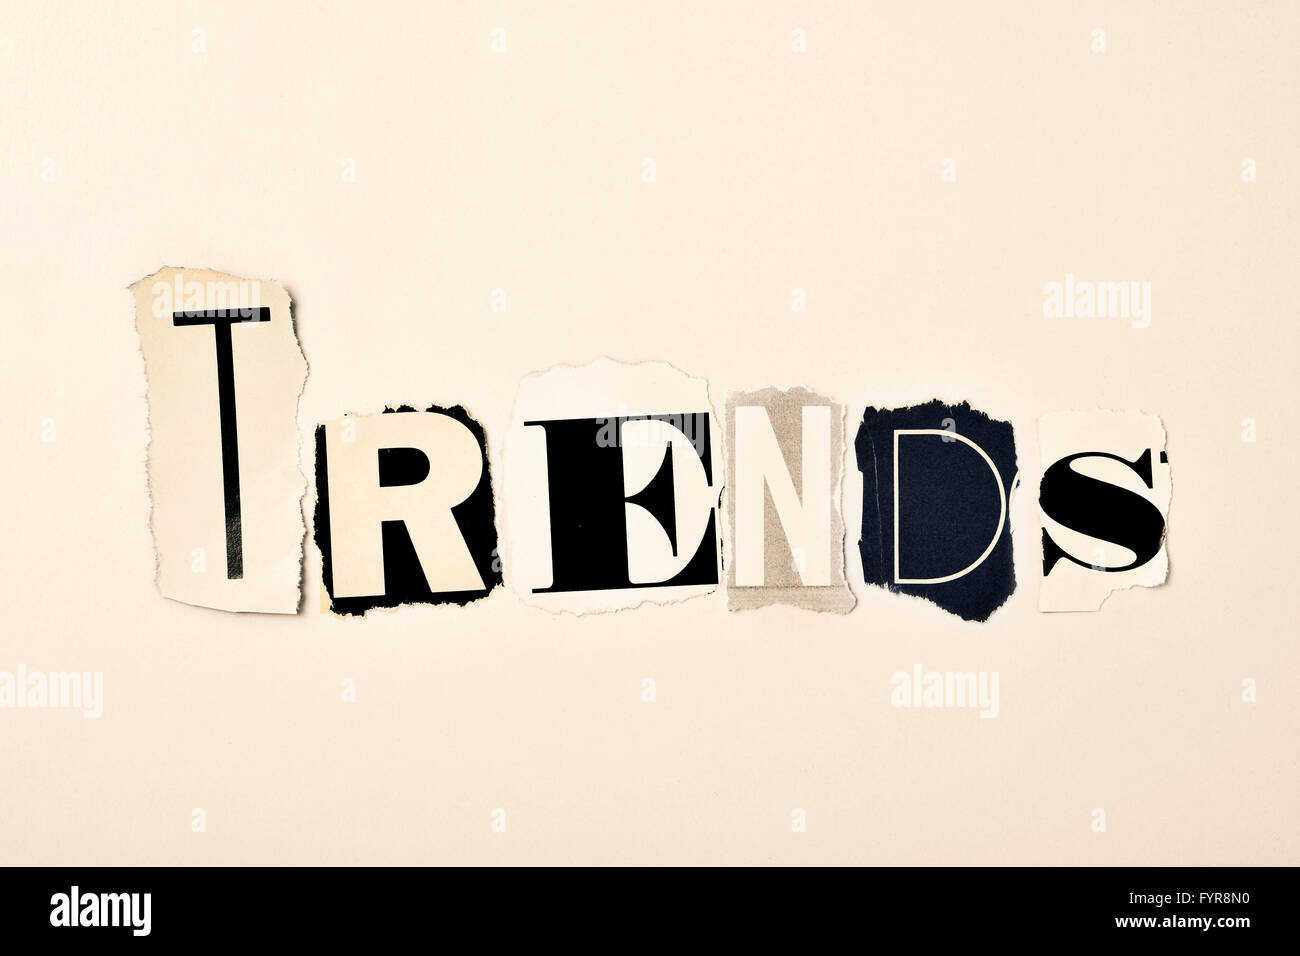 the word trends written with different letters made of clippings of newspapers and magazines, on an off-white background - Stock Image